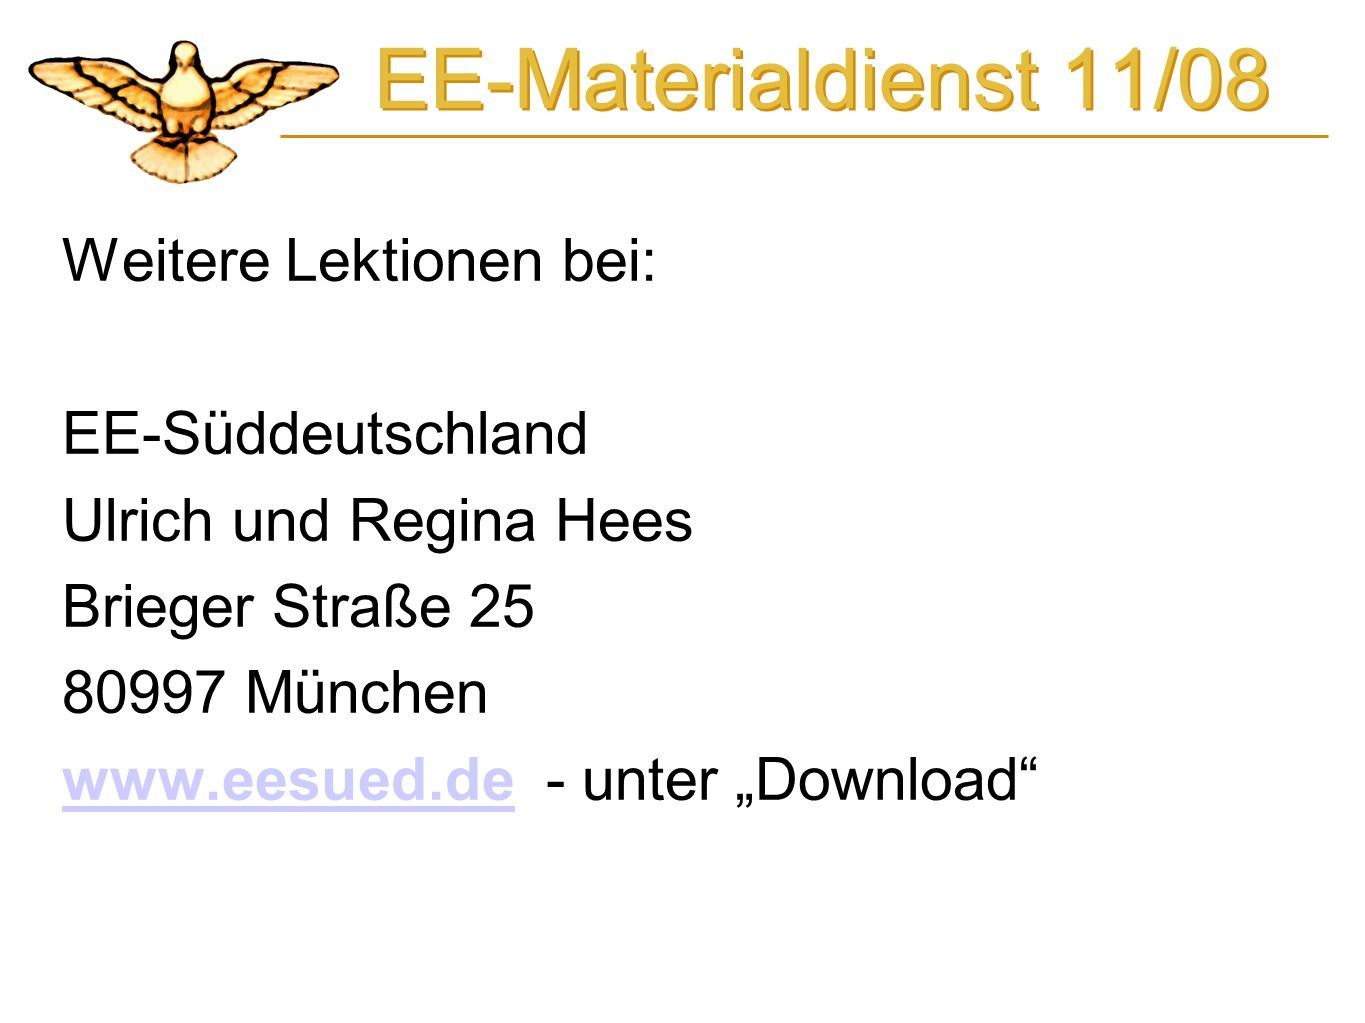 EE-Materialdienst 11/08